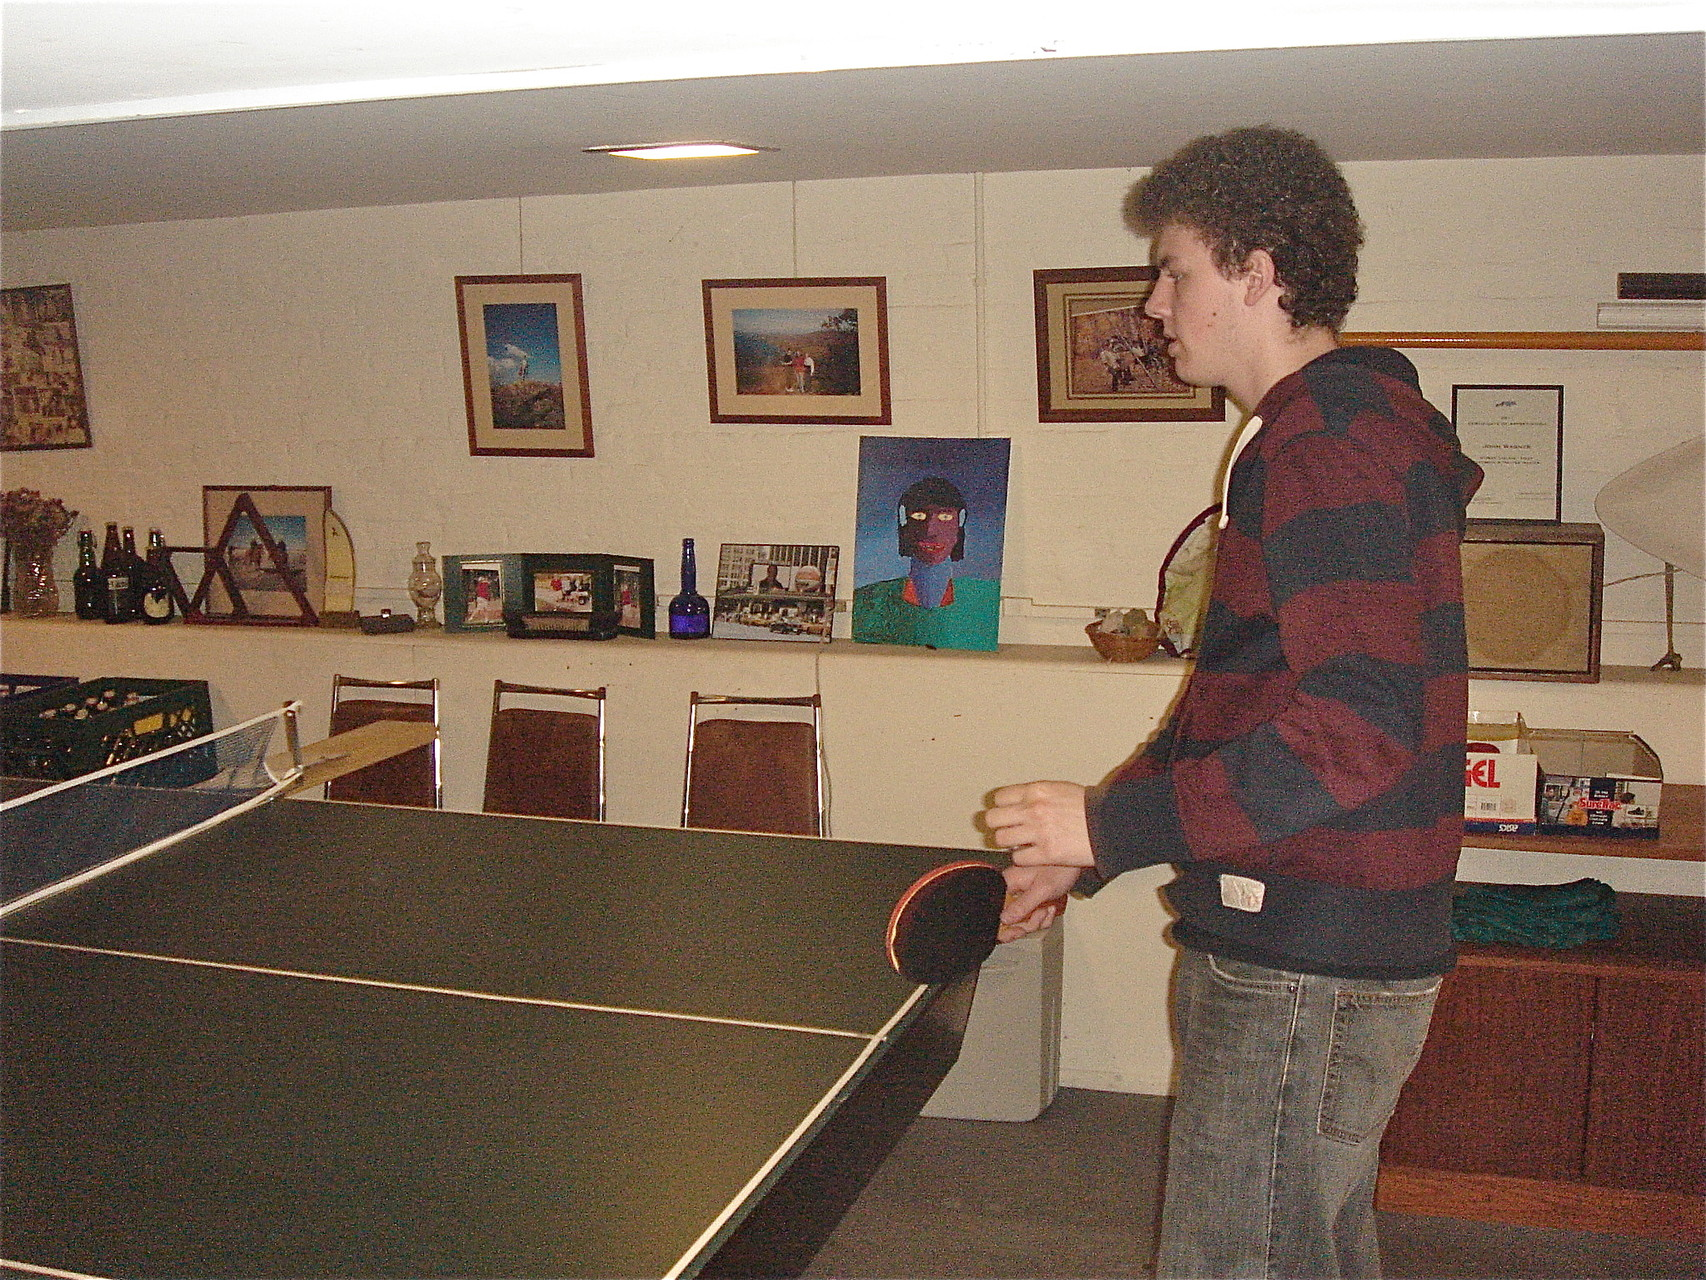 Ben Ackerman, Greg's cousin, at the ping pong table